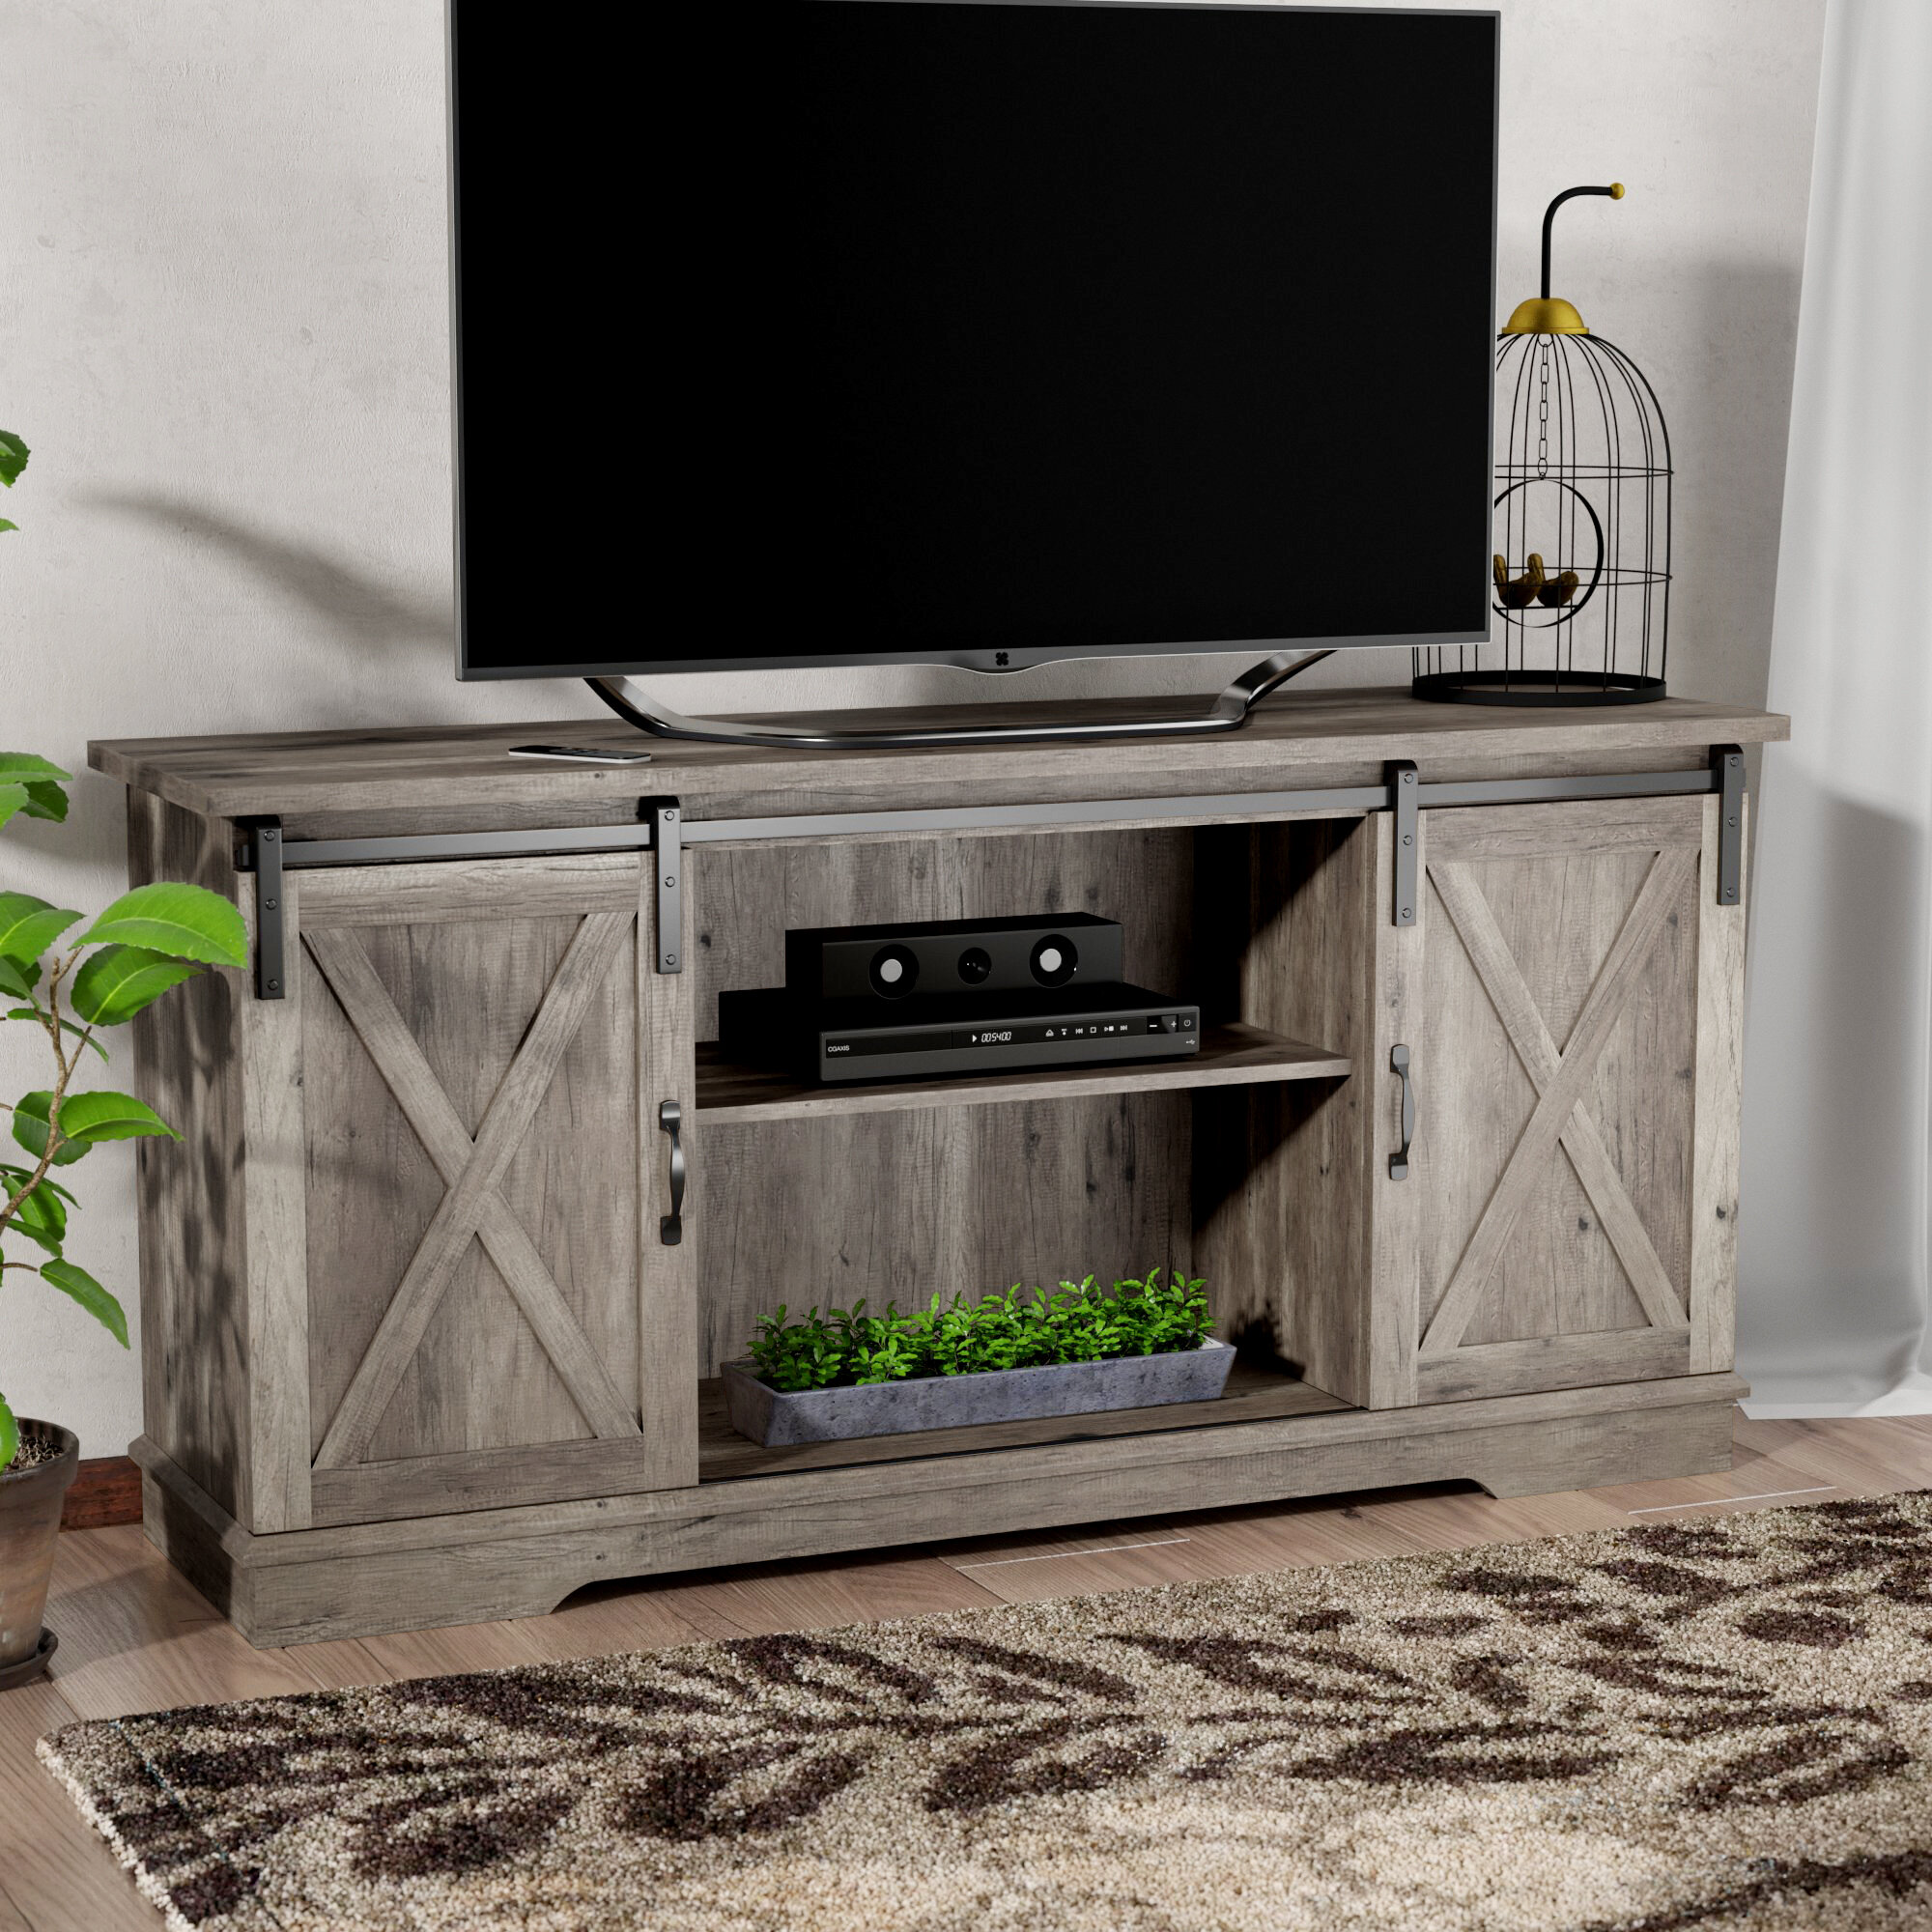 Gracie Oaks Tova Tv Stand For Tvs Up To 65 Reviews Wayfair